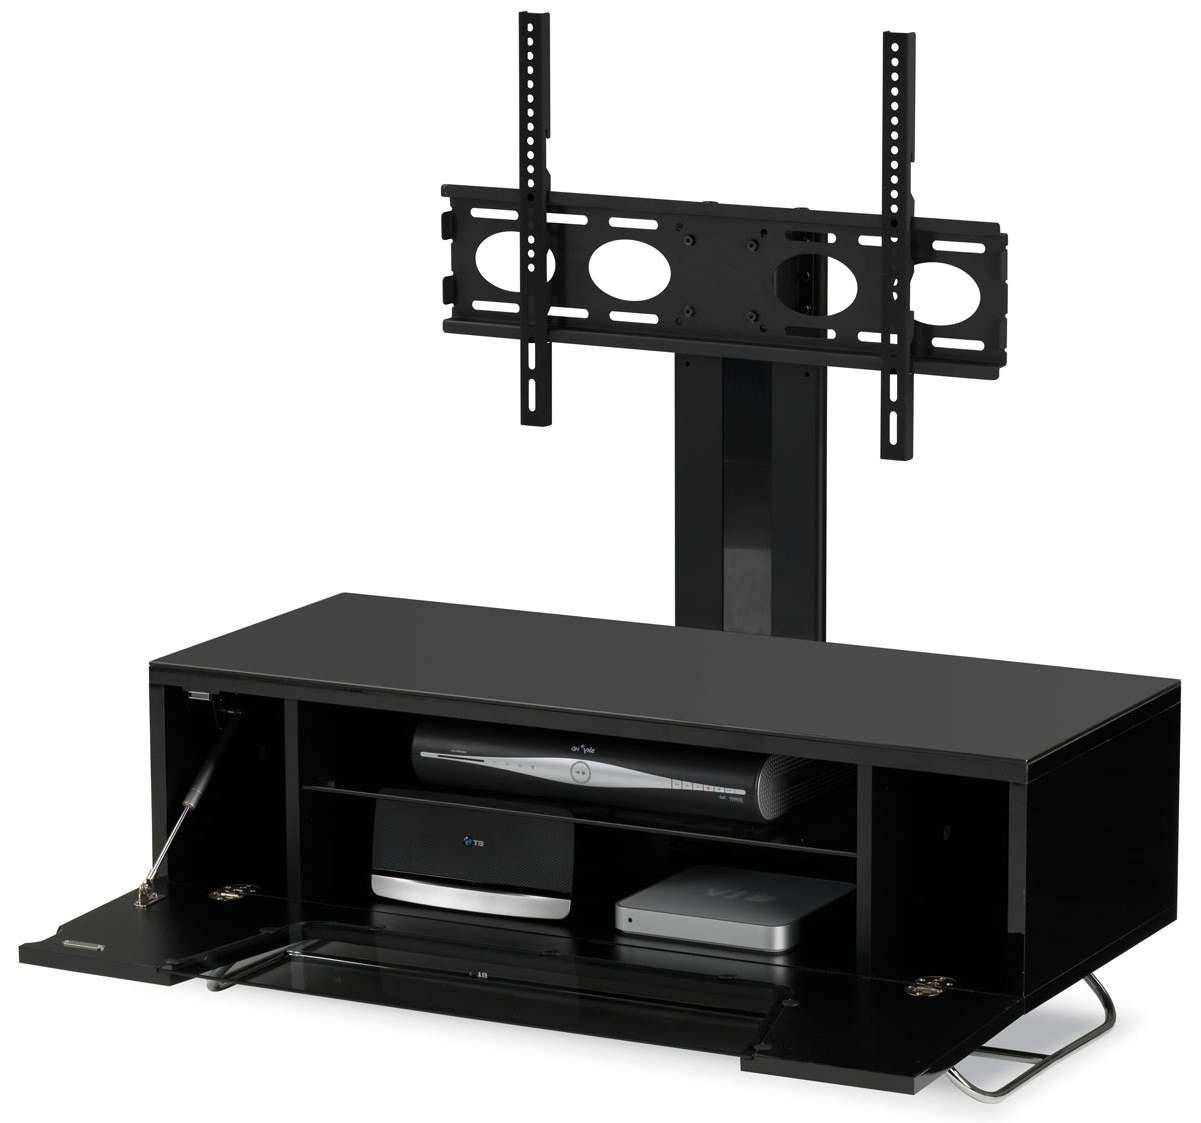 Alphason Chromium Black Cantilever Tv Stand Pertaining To Tv Stands Cantilever (View 12 of 15)